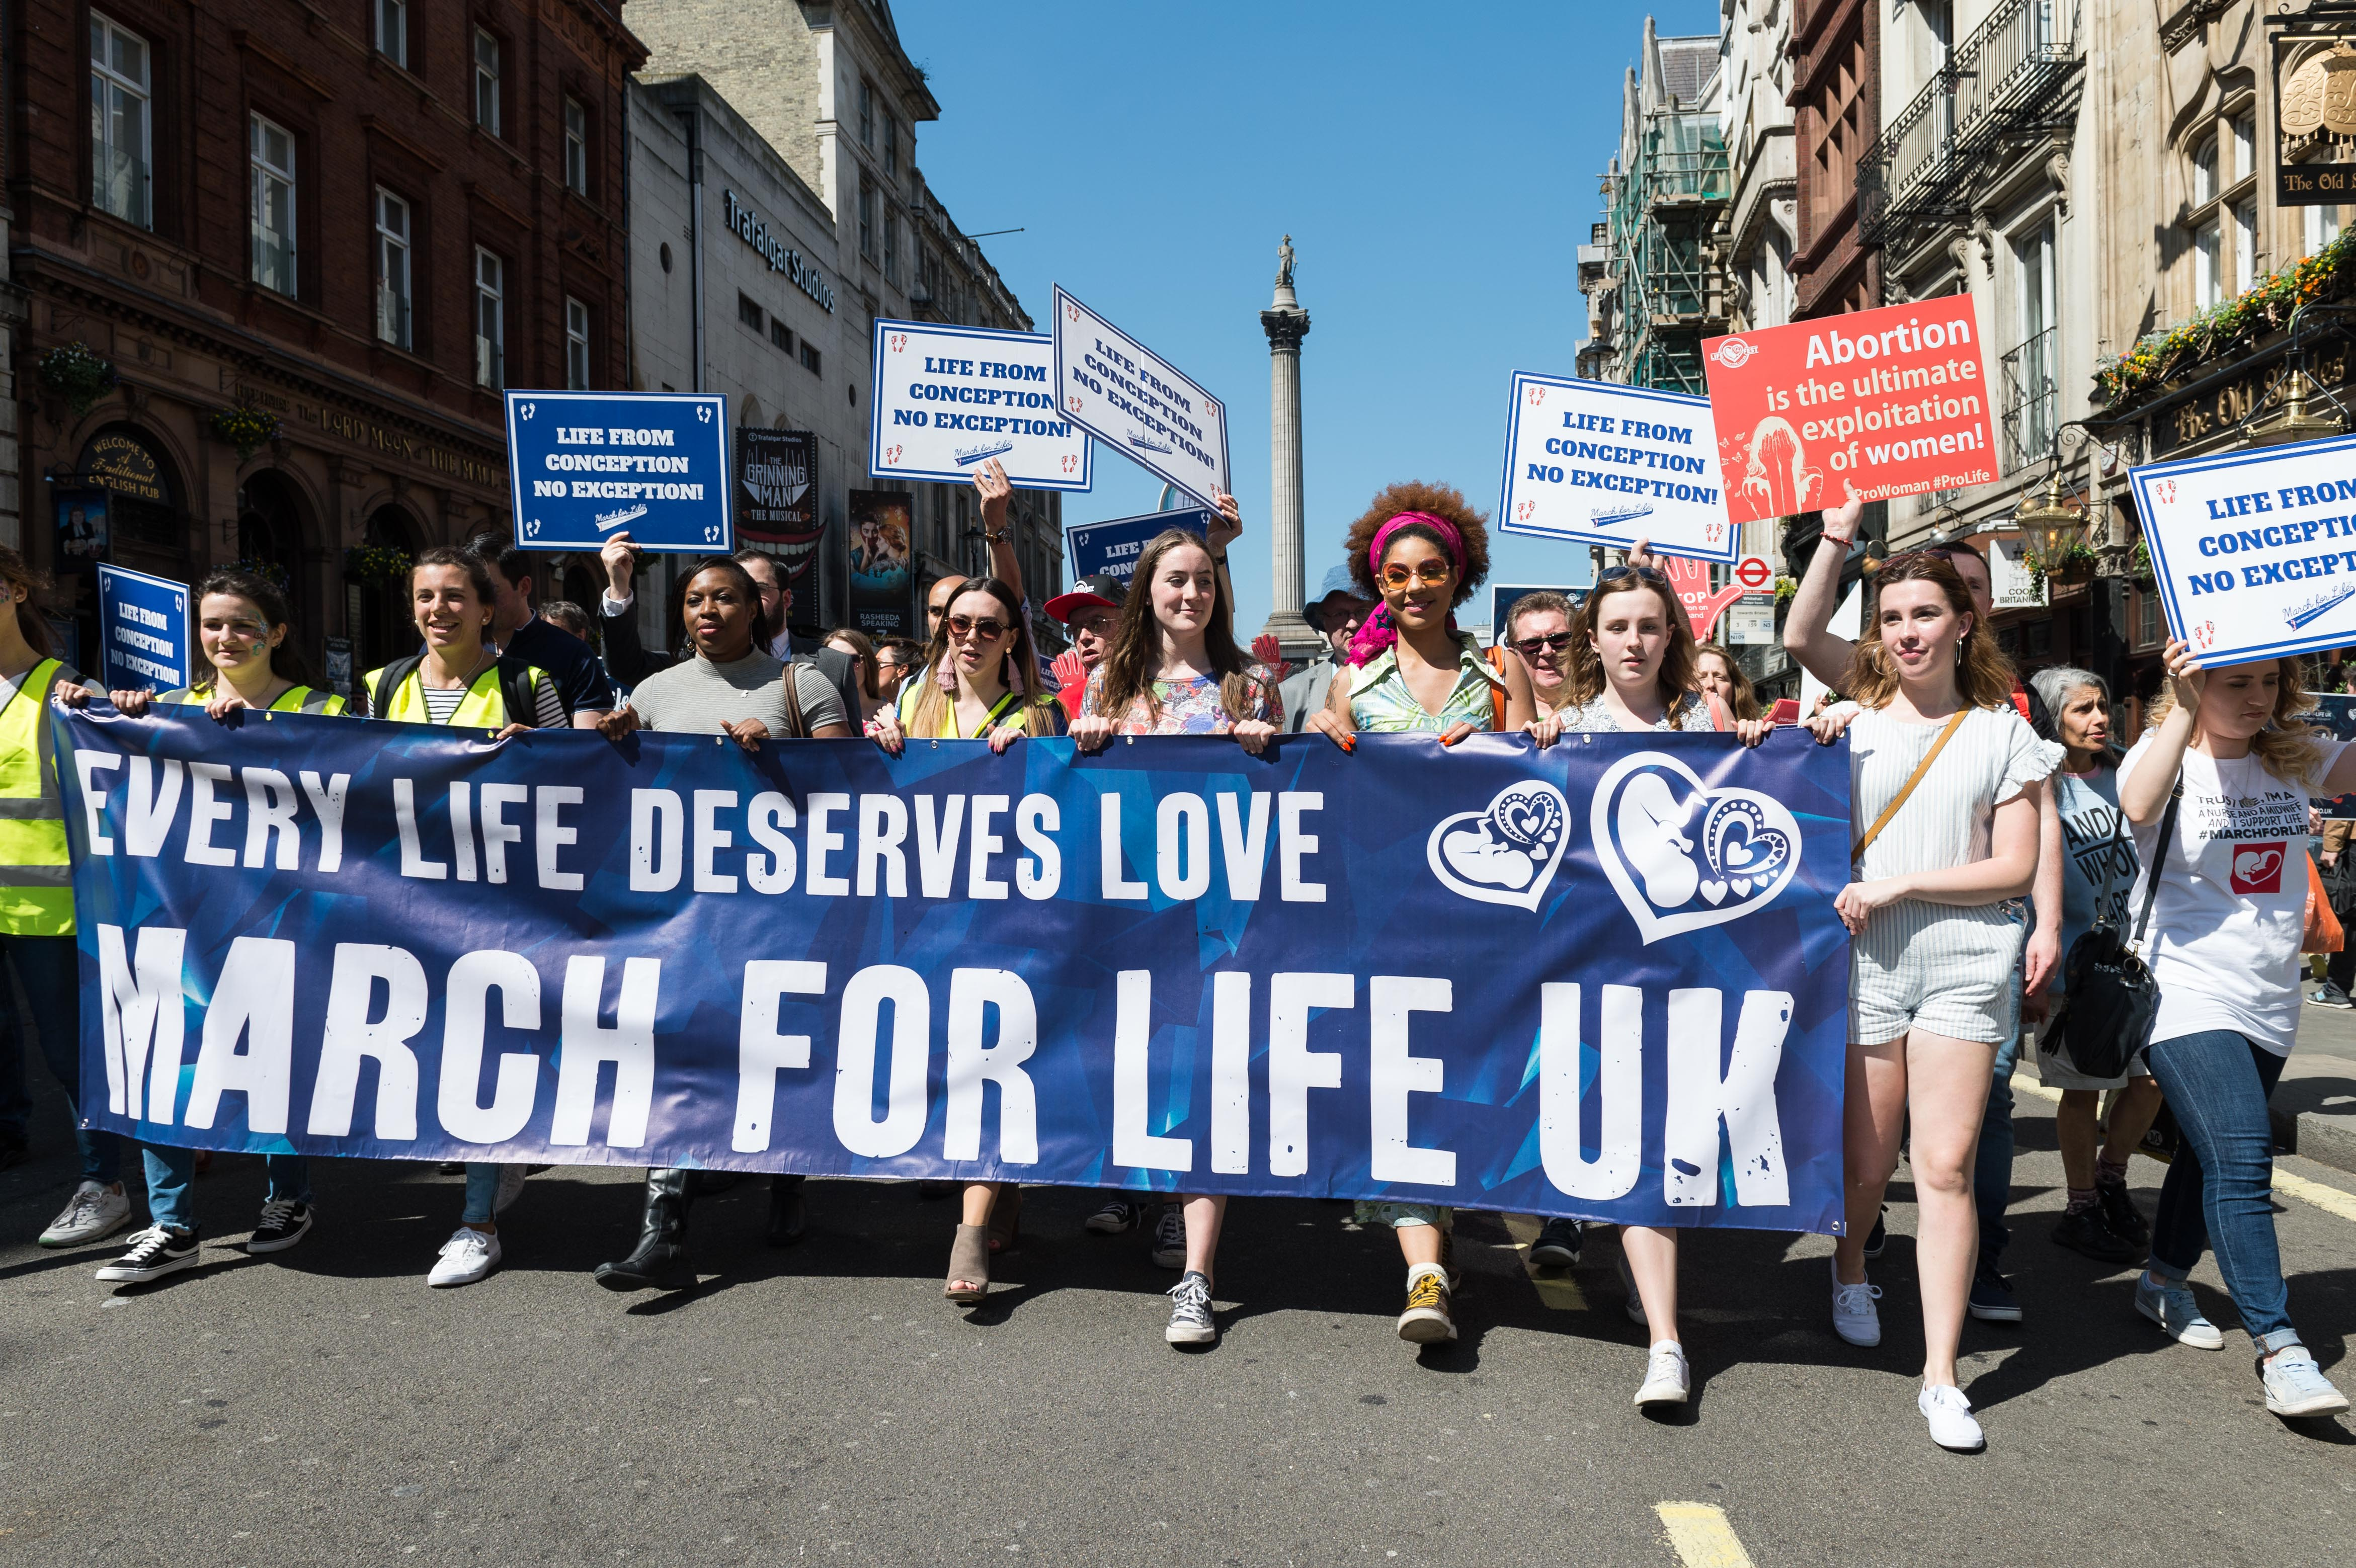 LONDON, UNITED KINGDOM - MAY 05: Thousands of anti-abortion supporters take part in the 5th annual 'March For Life' through central London followed by a rally in Parliament Square. May 05, 2018 in London, United Kingdom. (Photo credit should read Wiktor Szymanowicz / Barcroft Media via Getty Images)